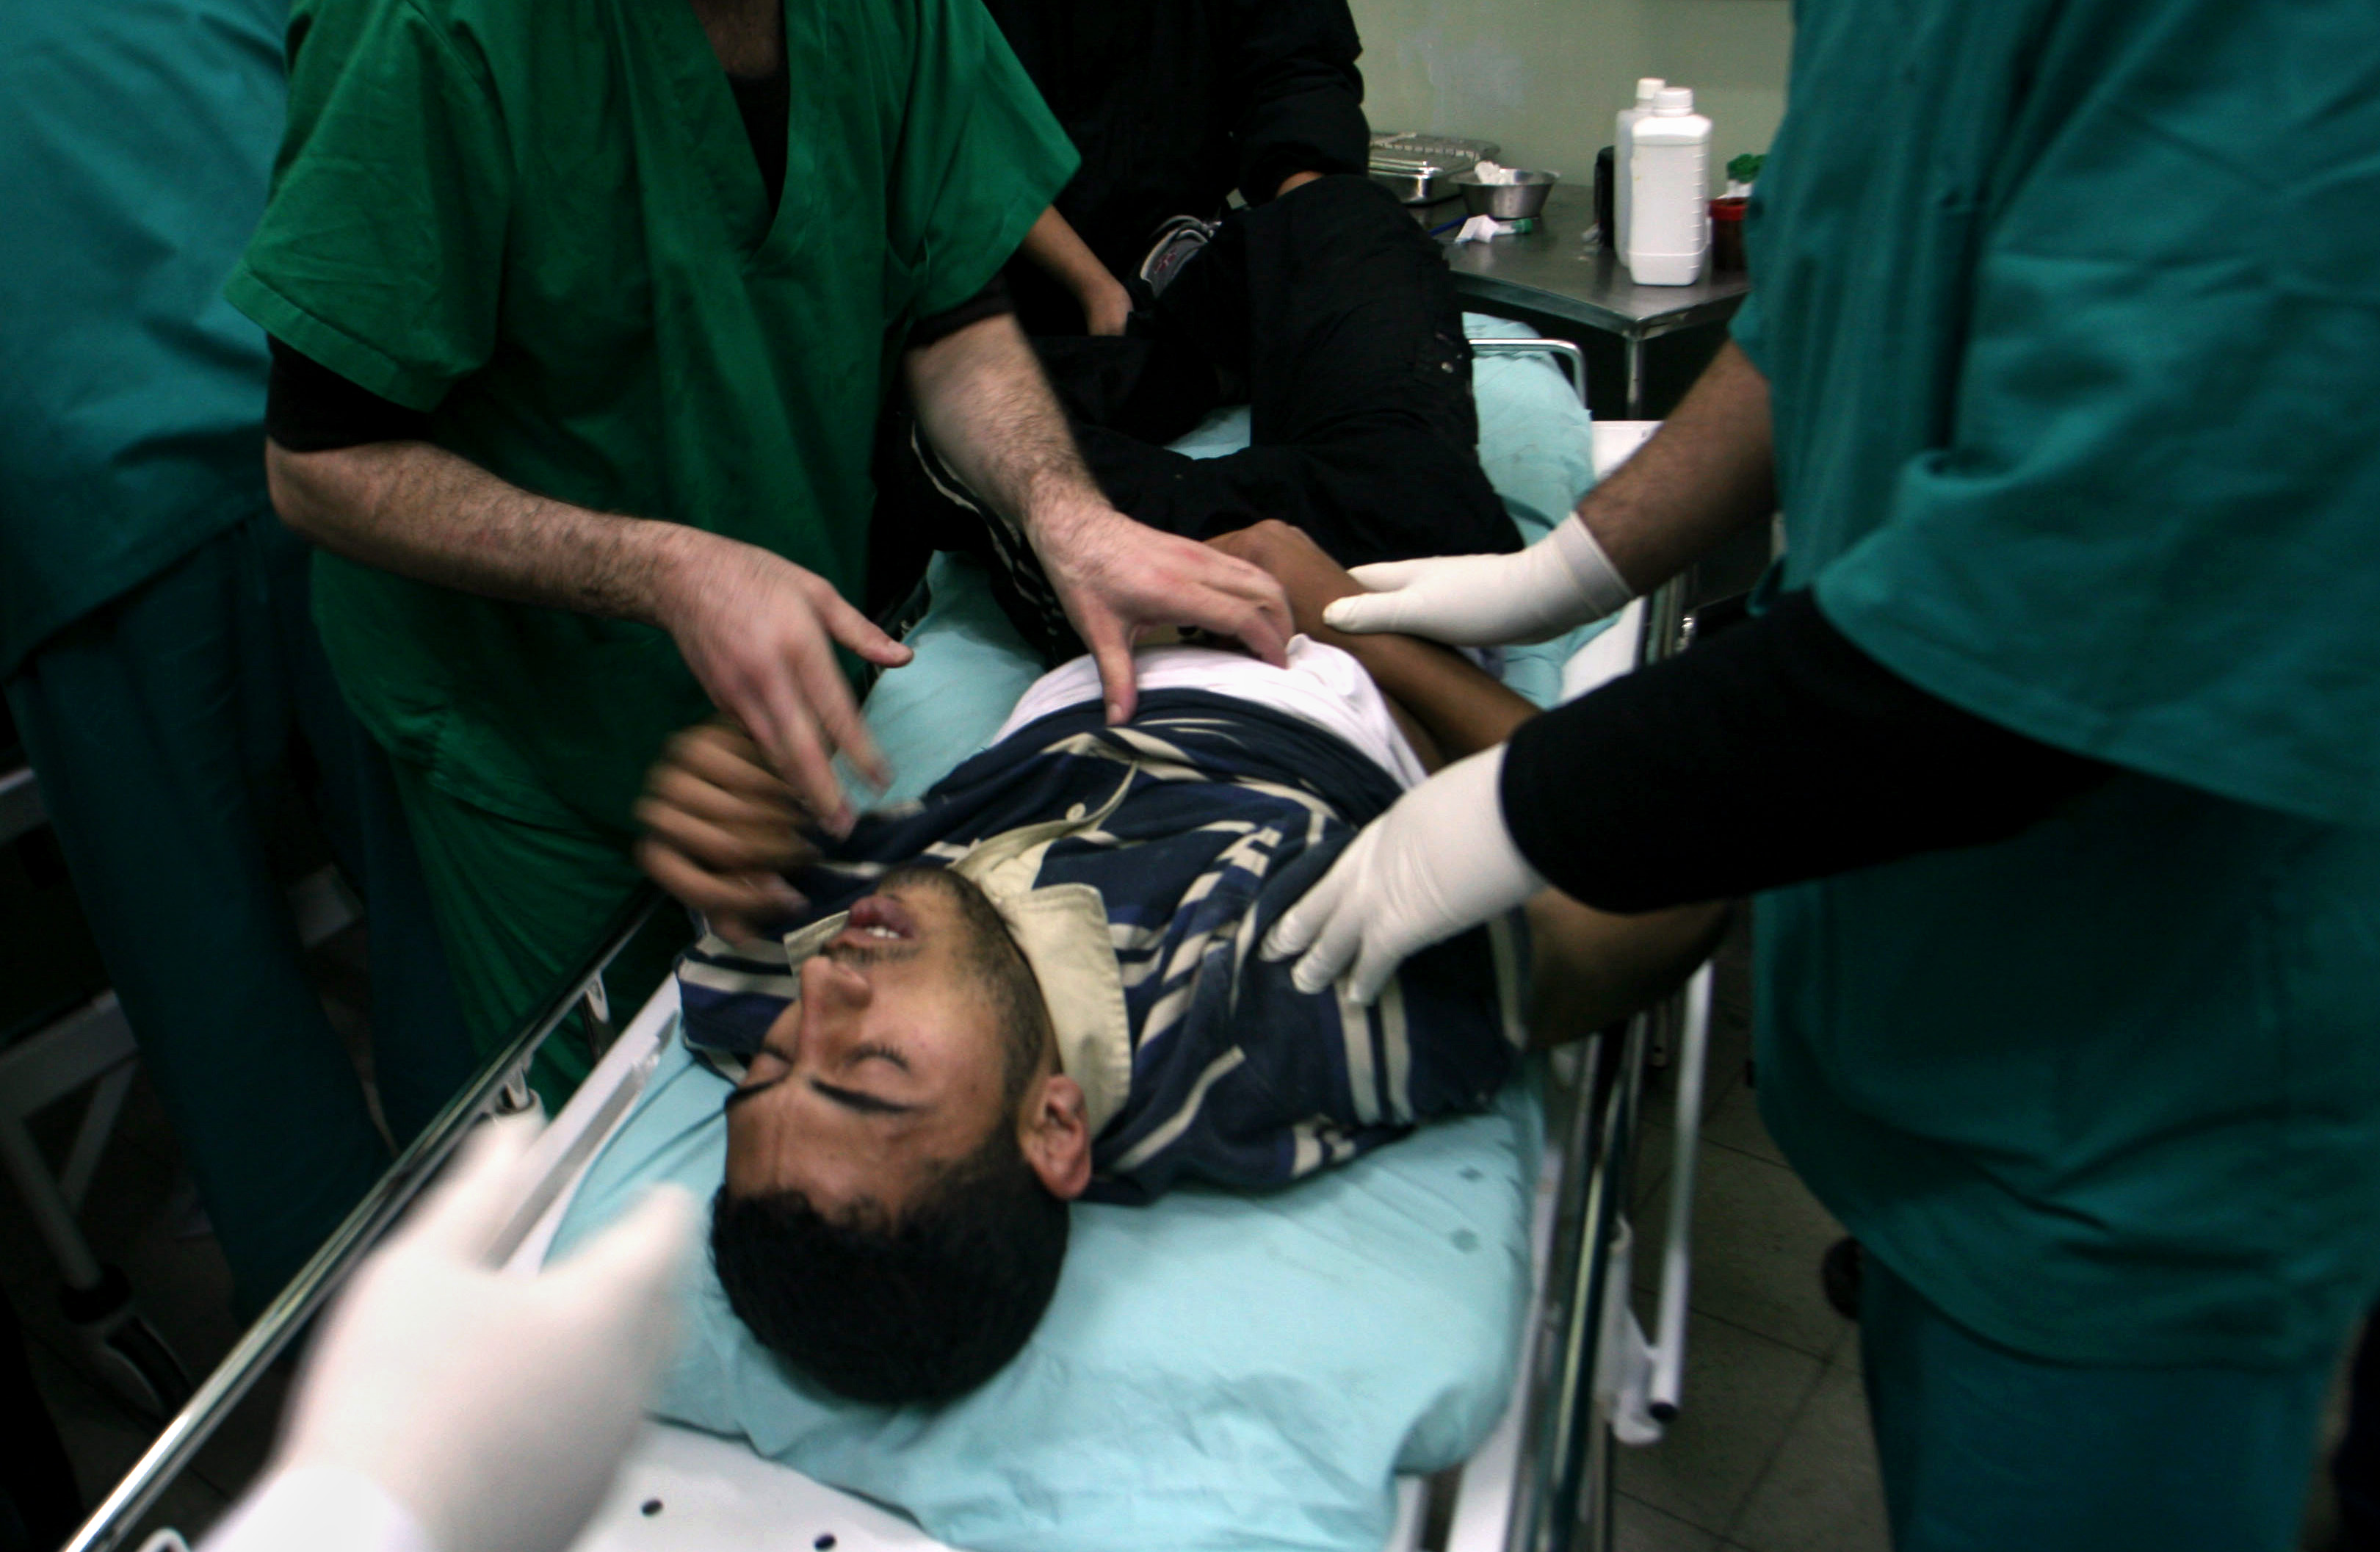 Palestinian medics treat a wounded man at Nasser Hospital in the Southern Gaza Strip on Thursday.